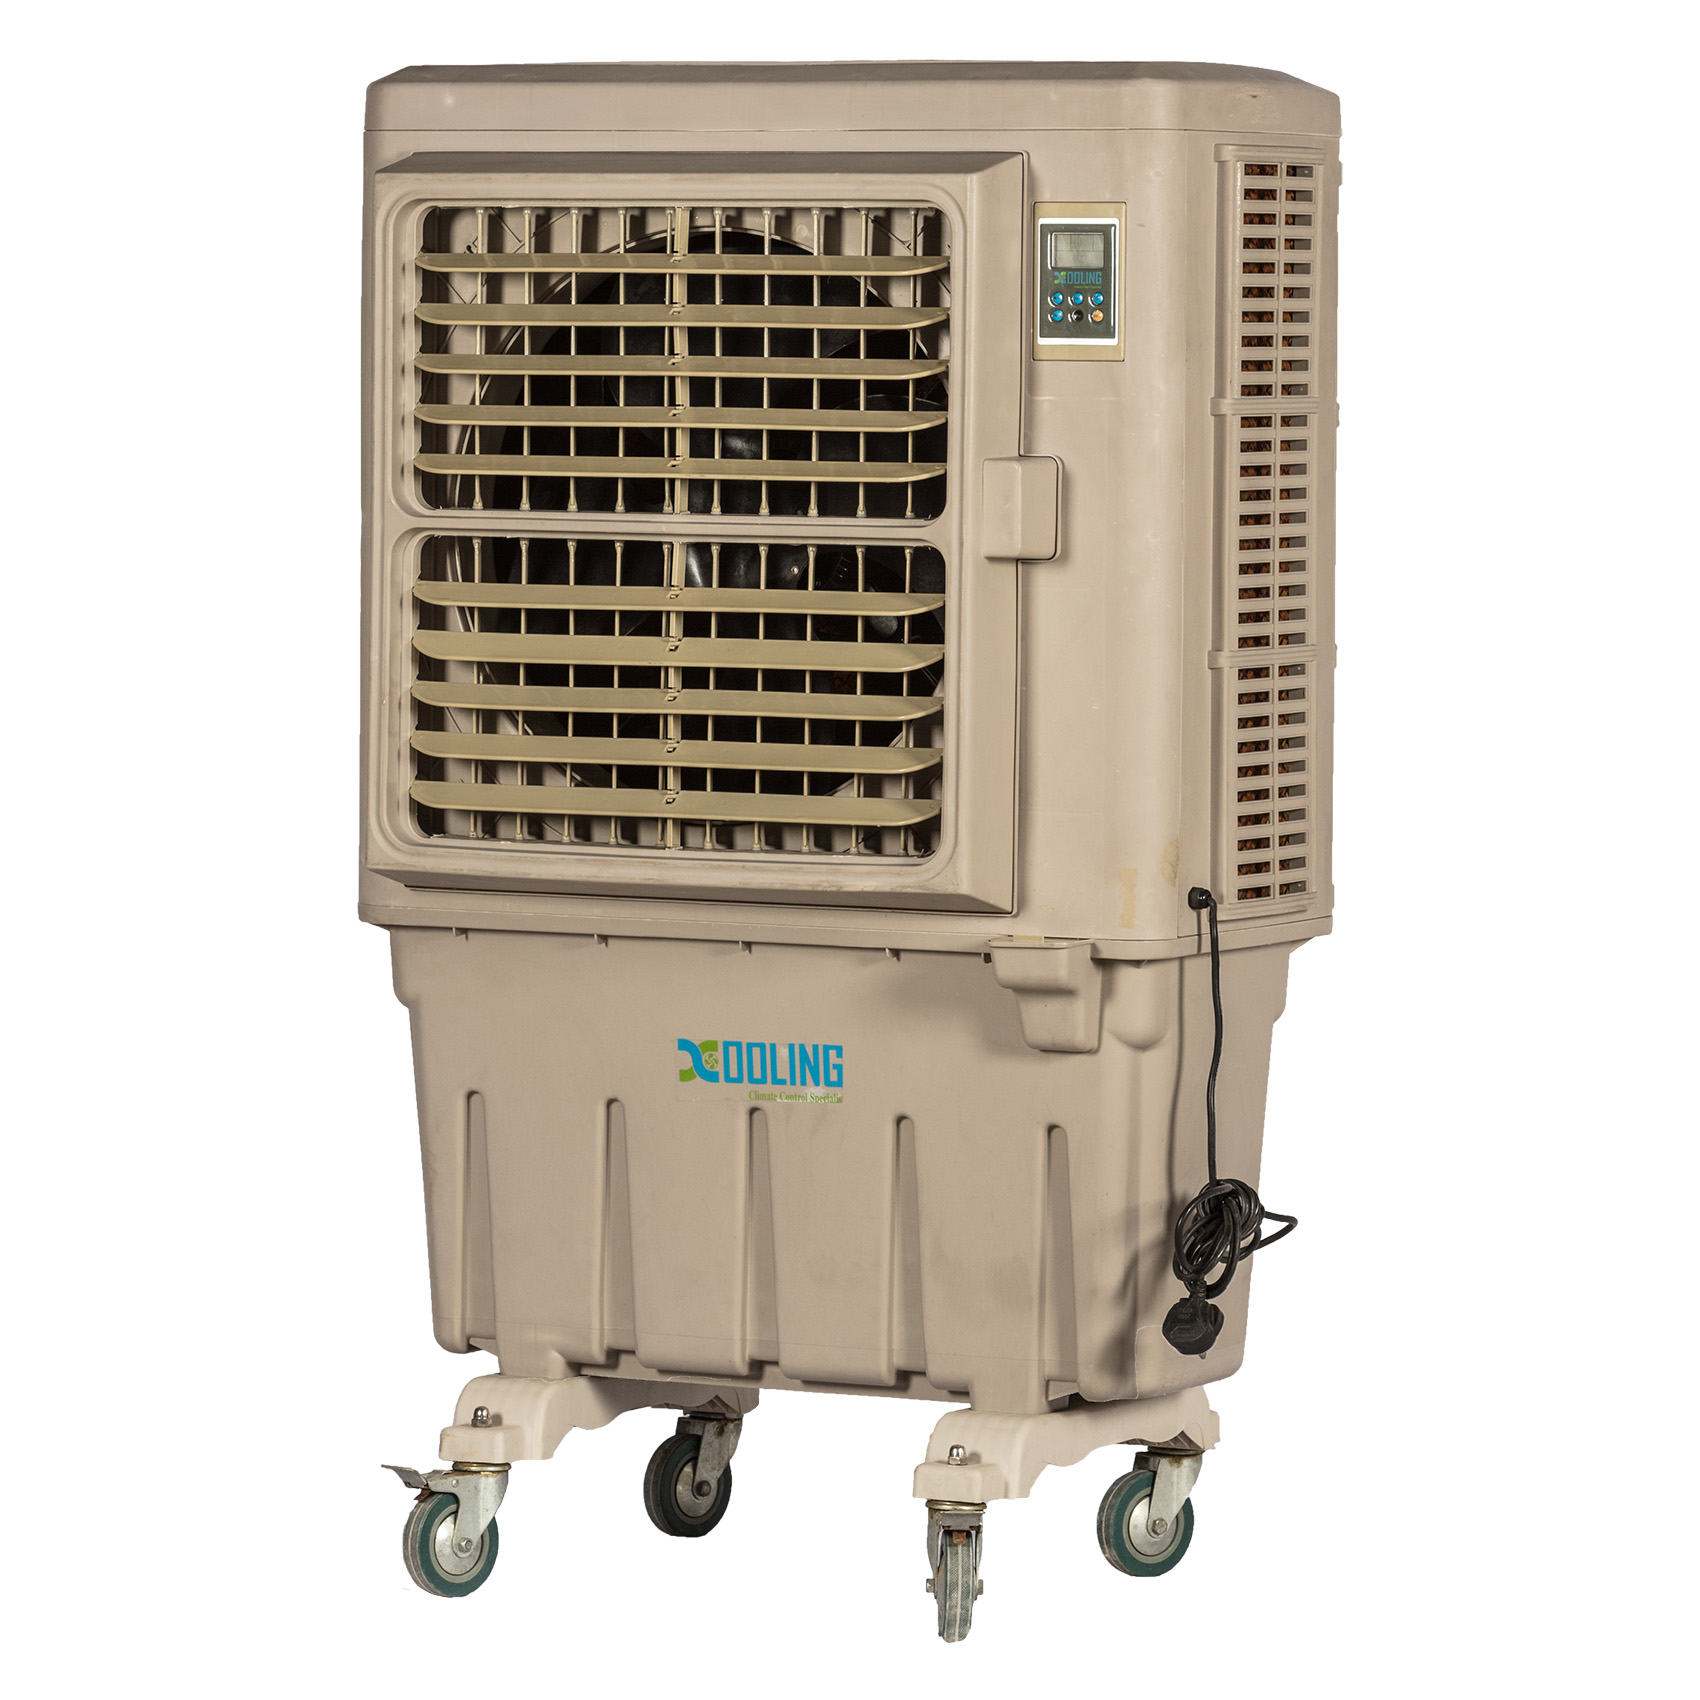 Air Cooler Vs Air Conditioner : Xc a air cooler xcooling dubai outdoor coolers